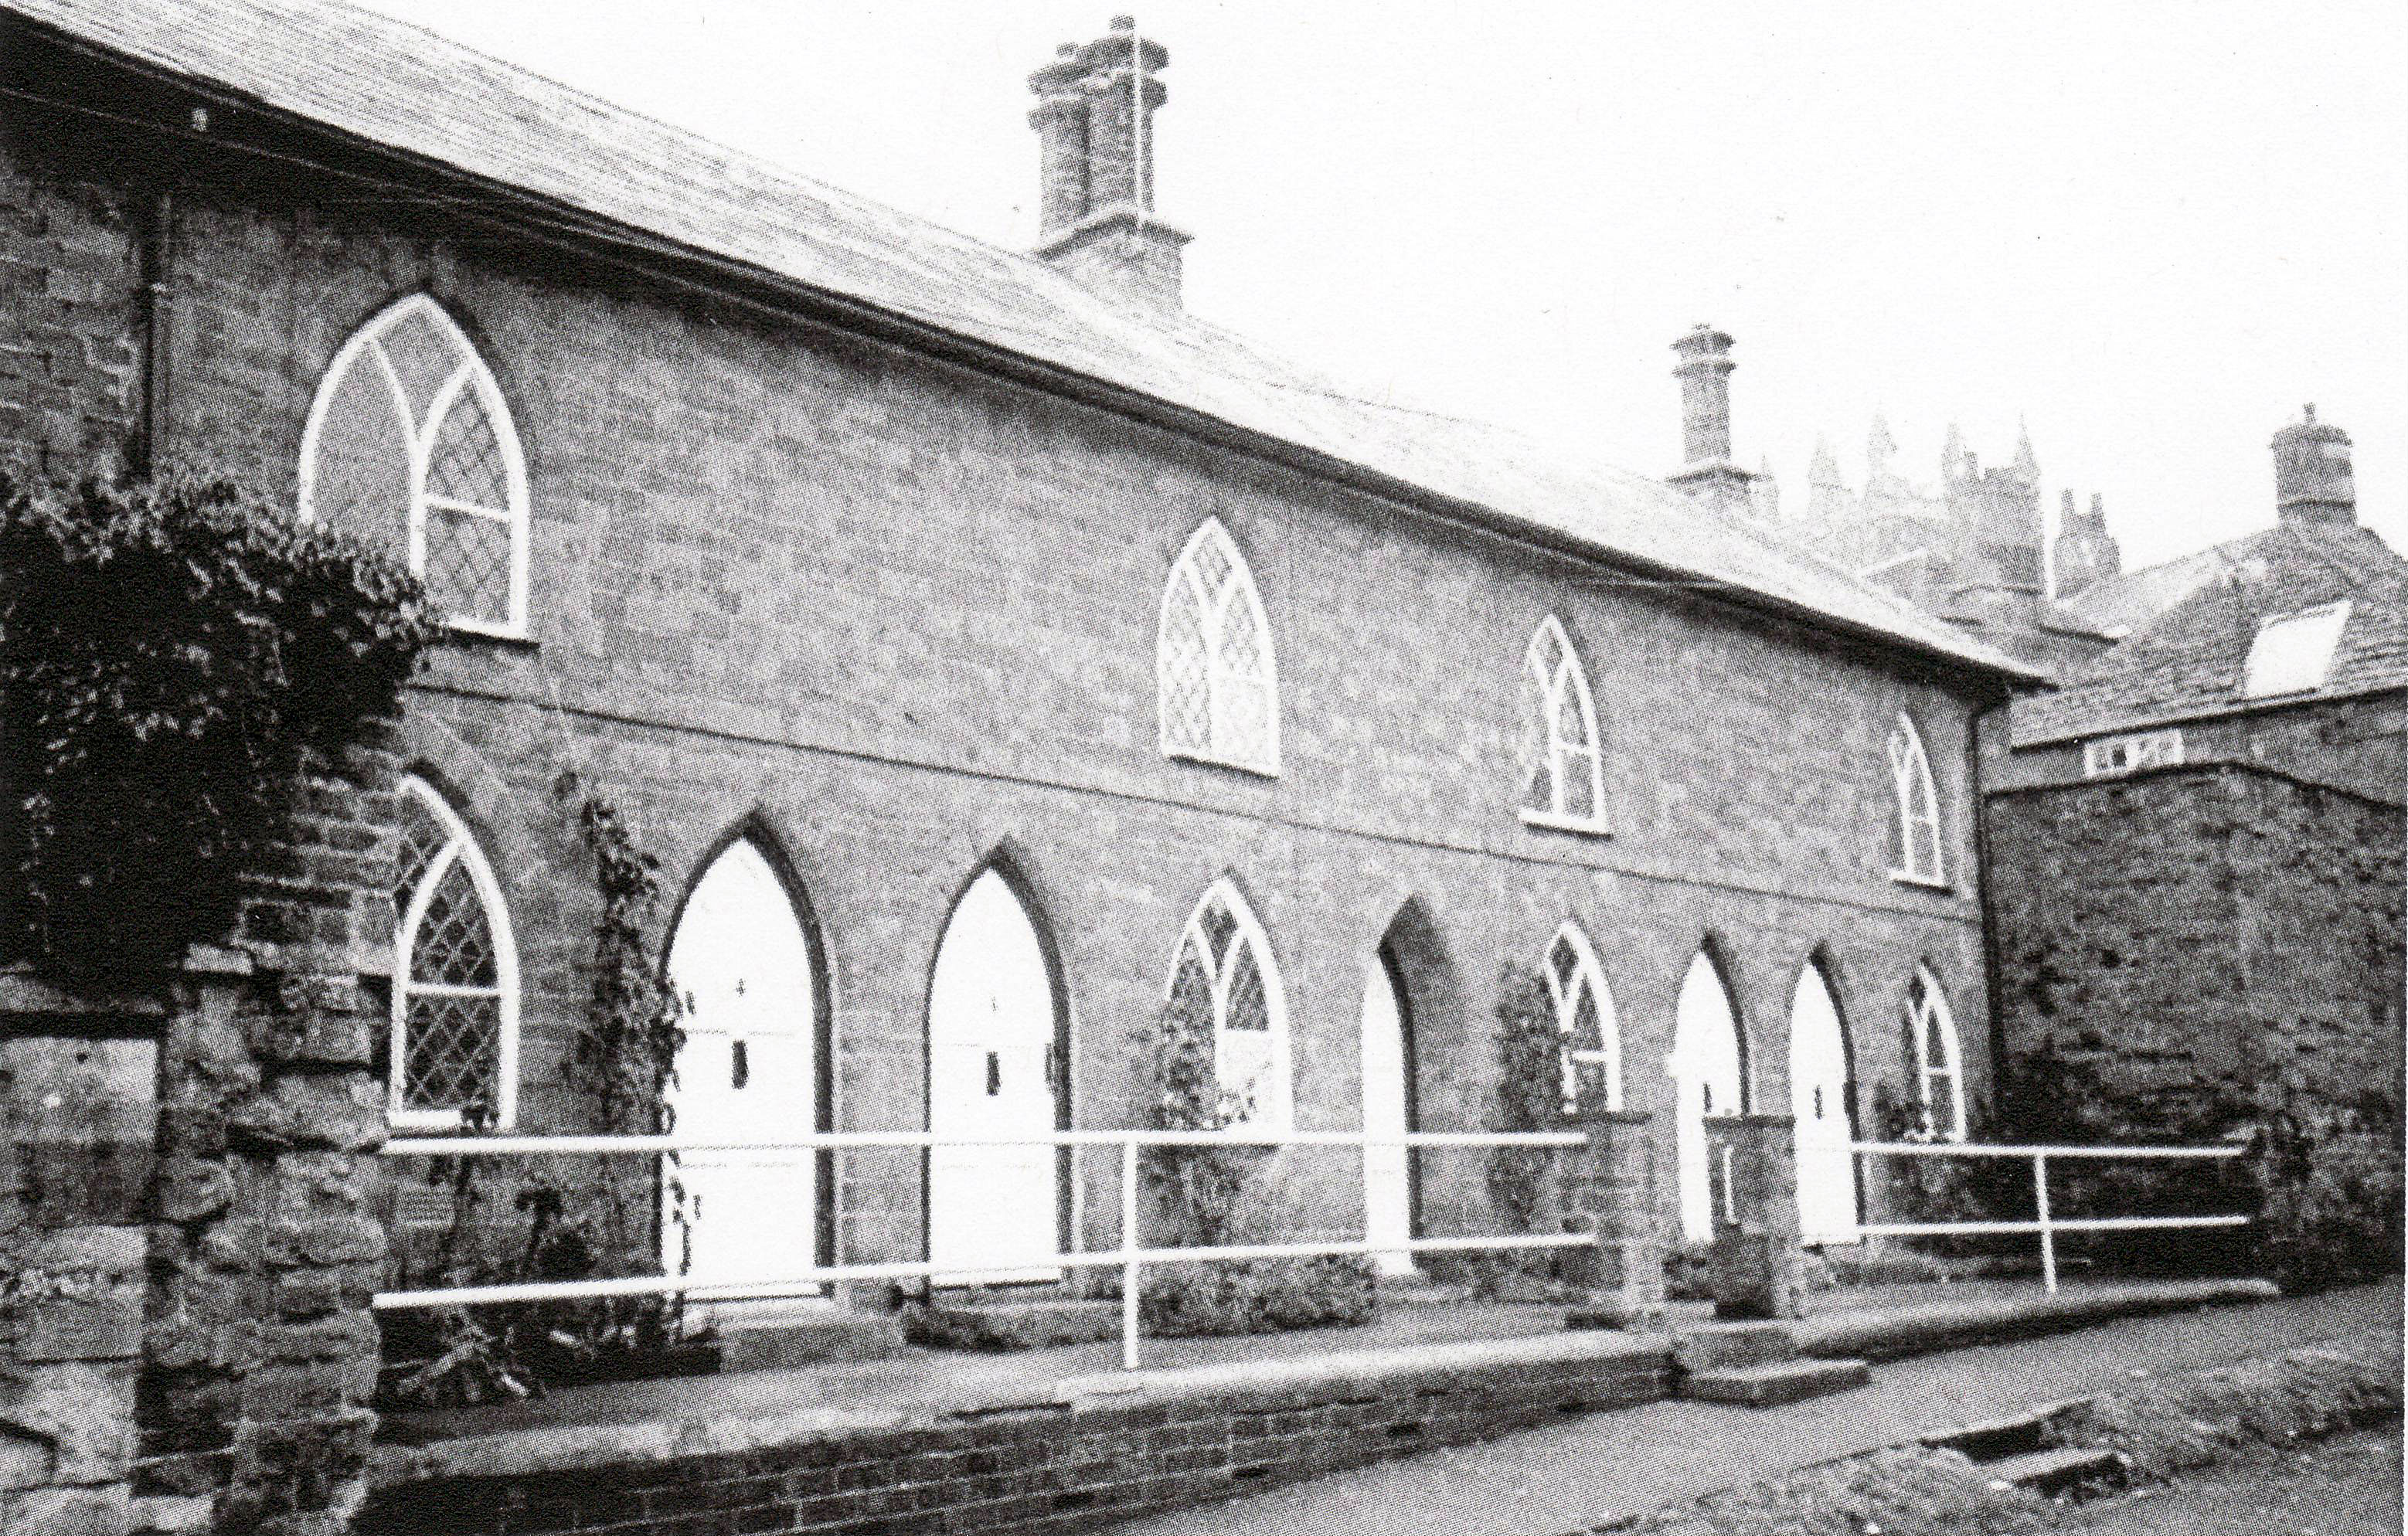 The Almshouse